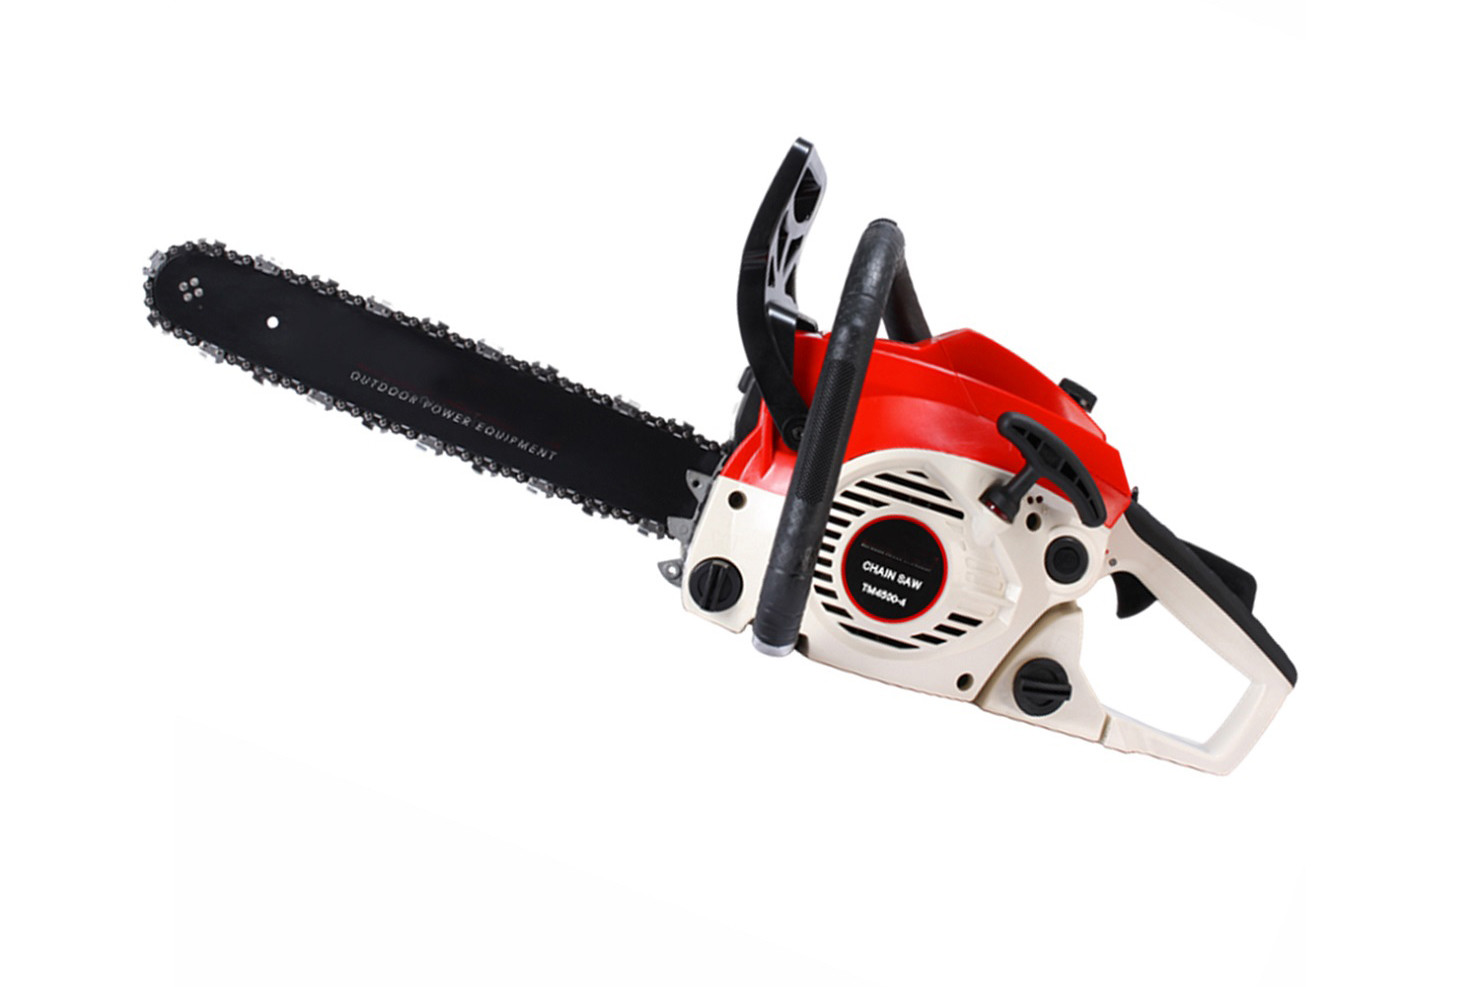 45cc 2 Stroke Wood Cutting Saw / Petrol Chainsaw With Emission 5 Air Cooling